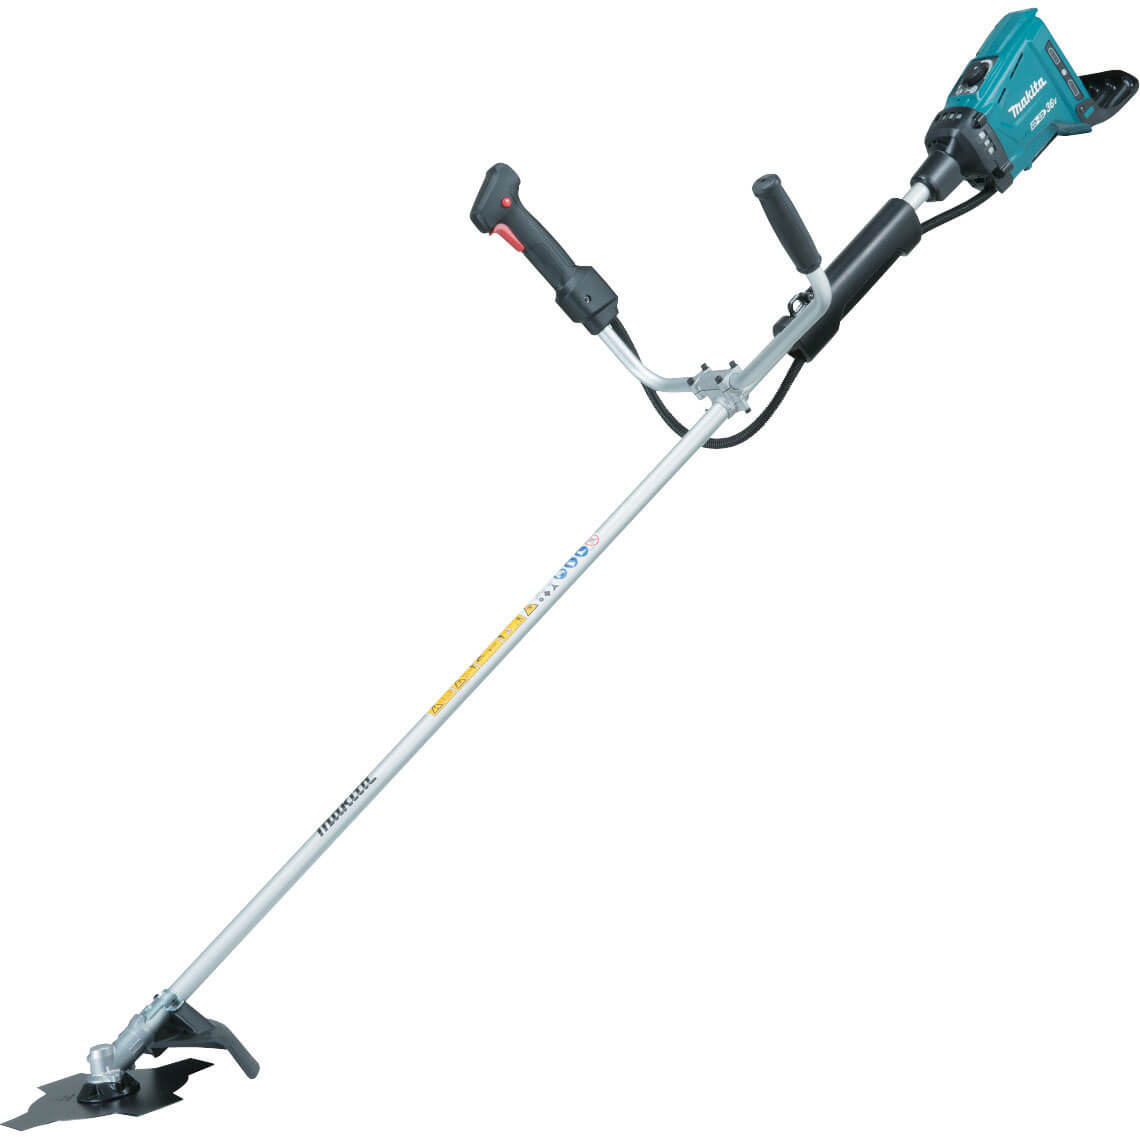 Makita Dur361uz 36v Cordless Lxt Brush Cutter 230mm Cut